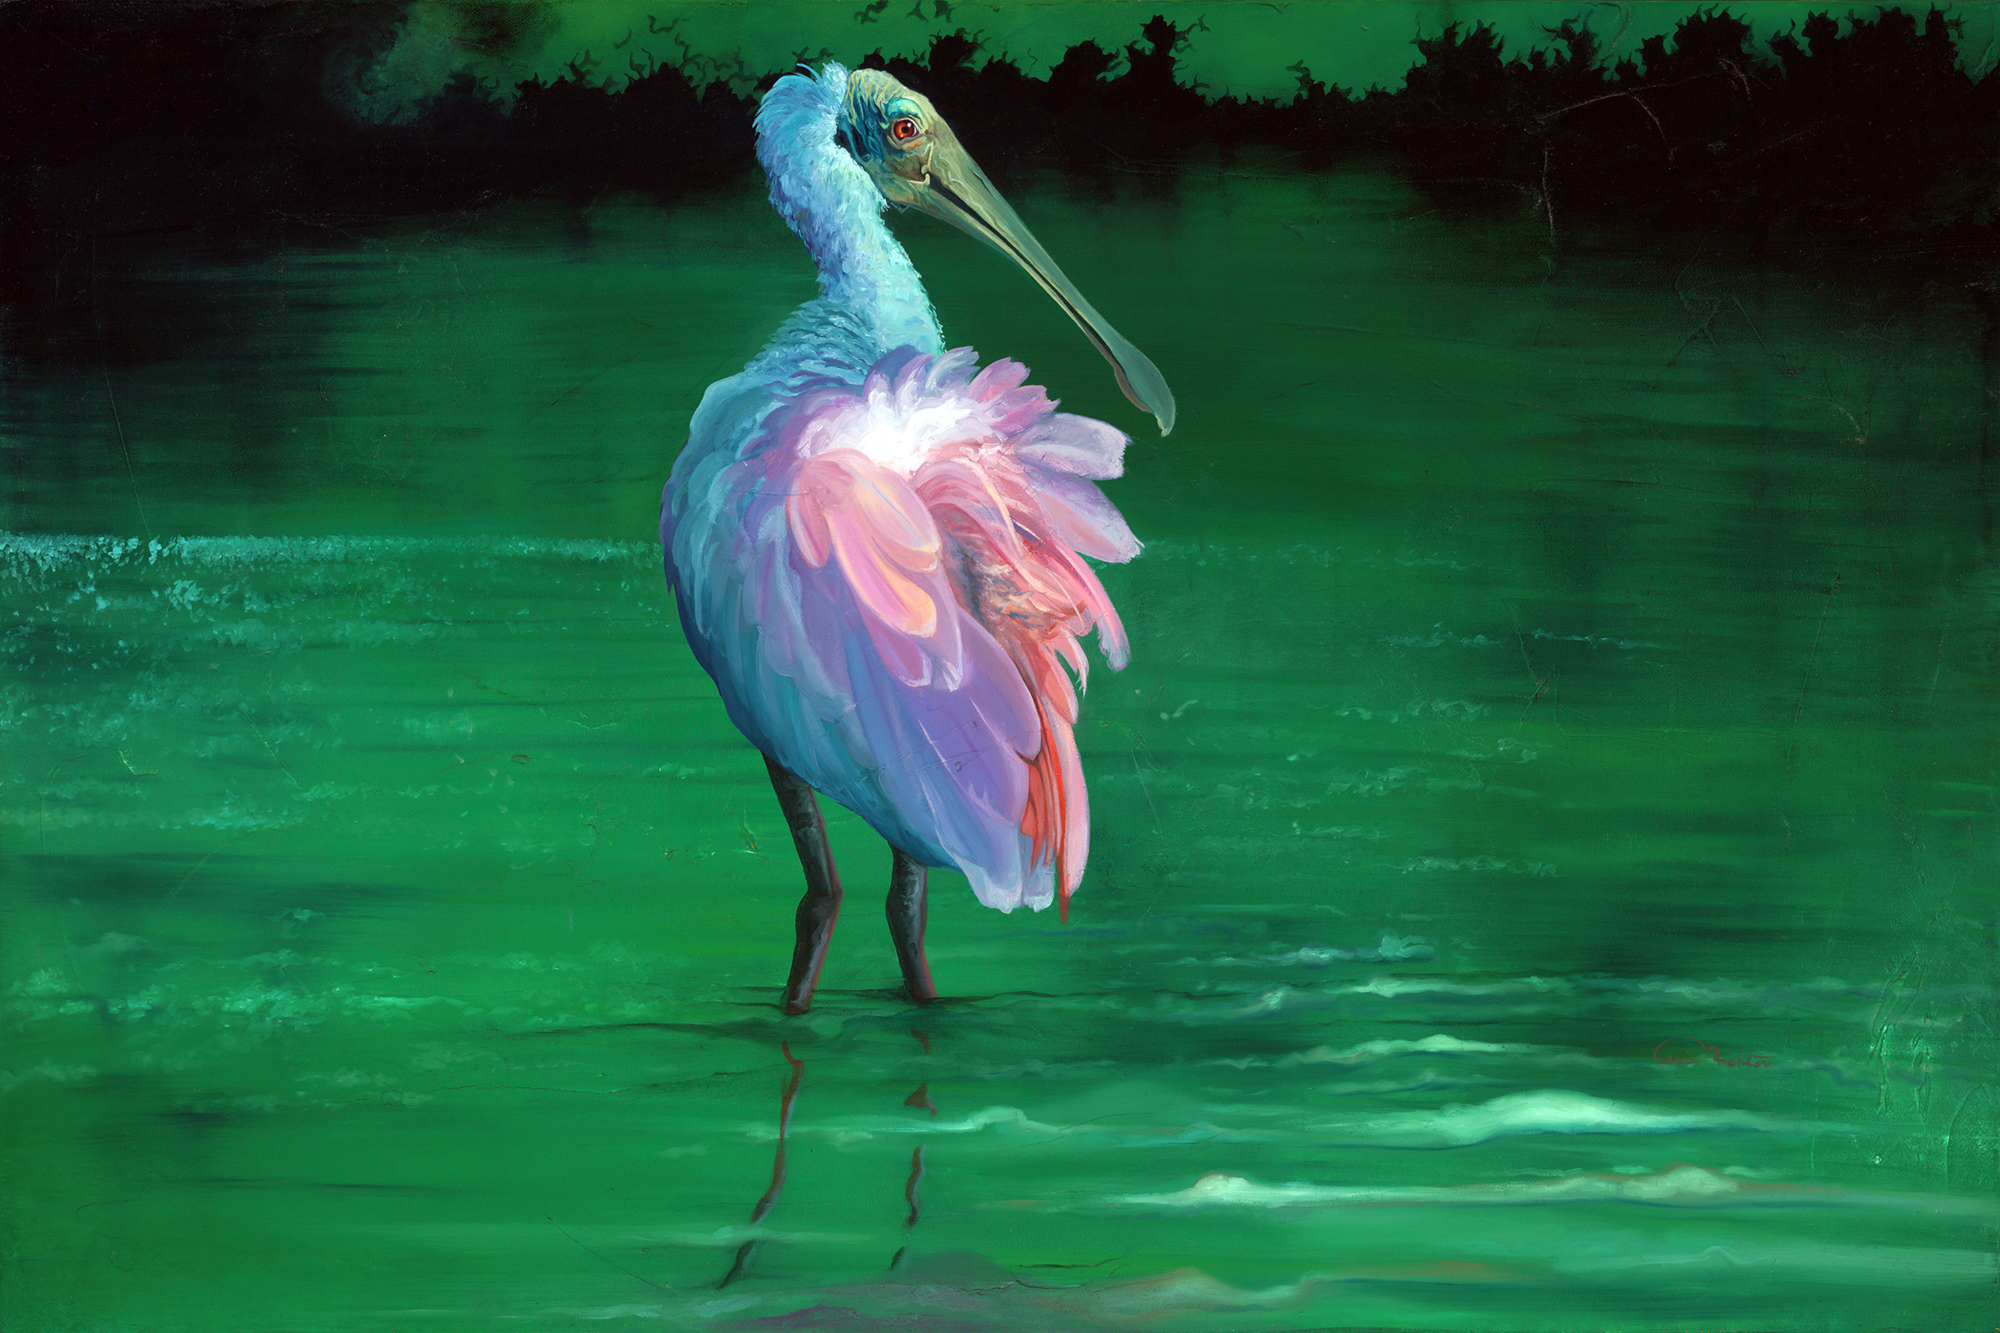 """Spoonbill Original Artwork Oil on Canvas for sale """"On the Flip-side"""" is a 24' h x 36' w of a Roseate Spoonbill standing in quiet waters."""